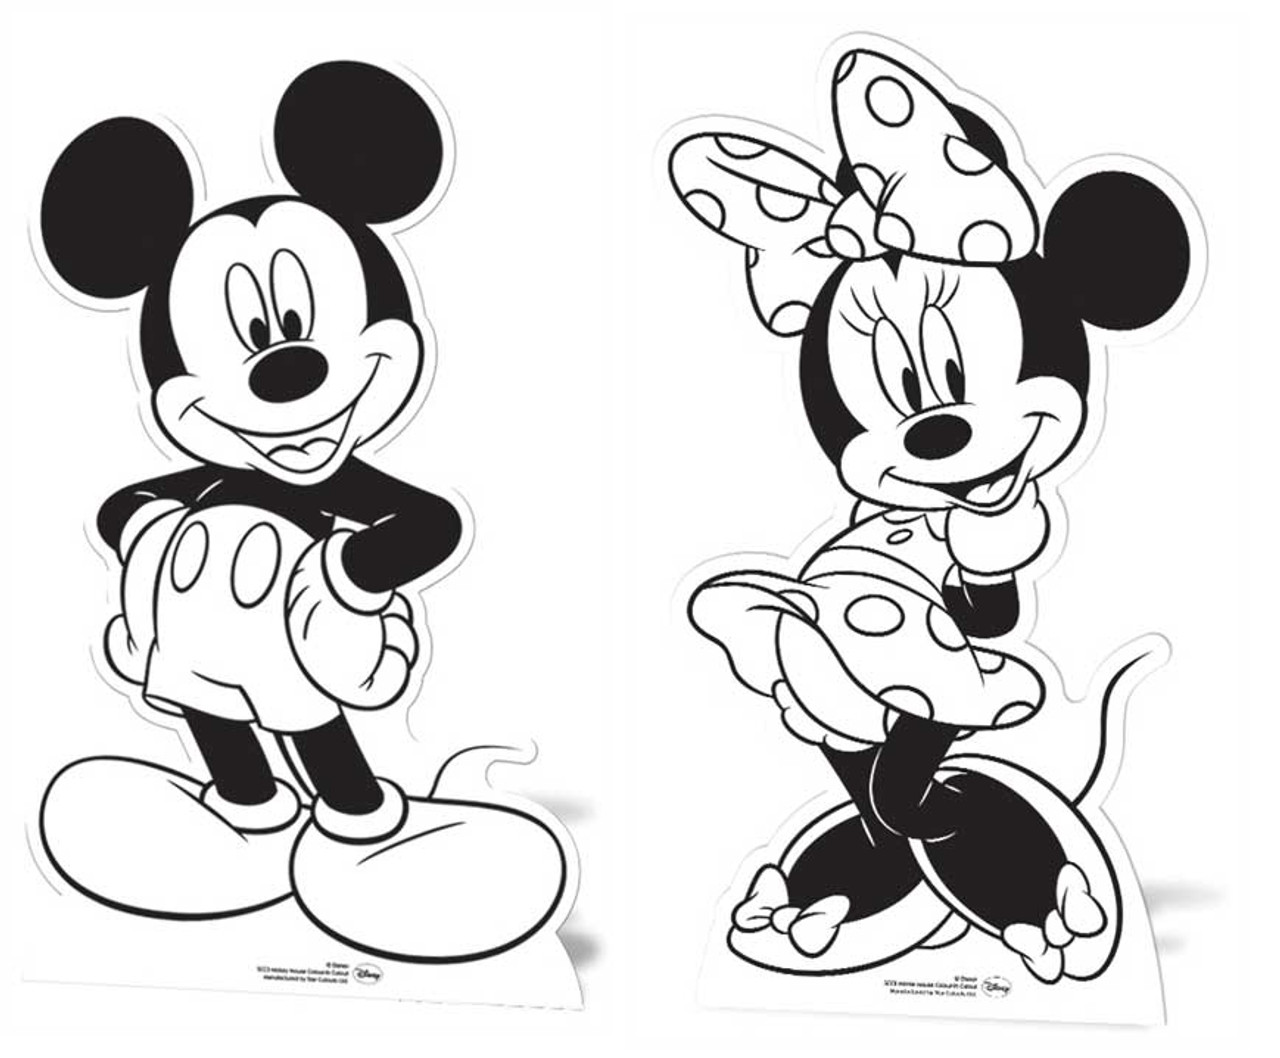 Mickey Mouse Minnie Mouse Set Of 2 Colour And Keep Cardboard Cutouts Buy Disney Cutouts Standups Standees At Starstills Com